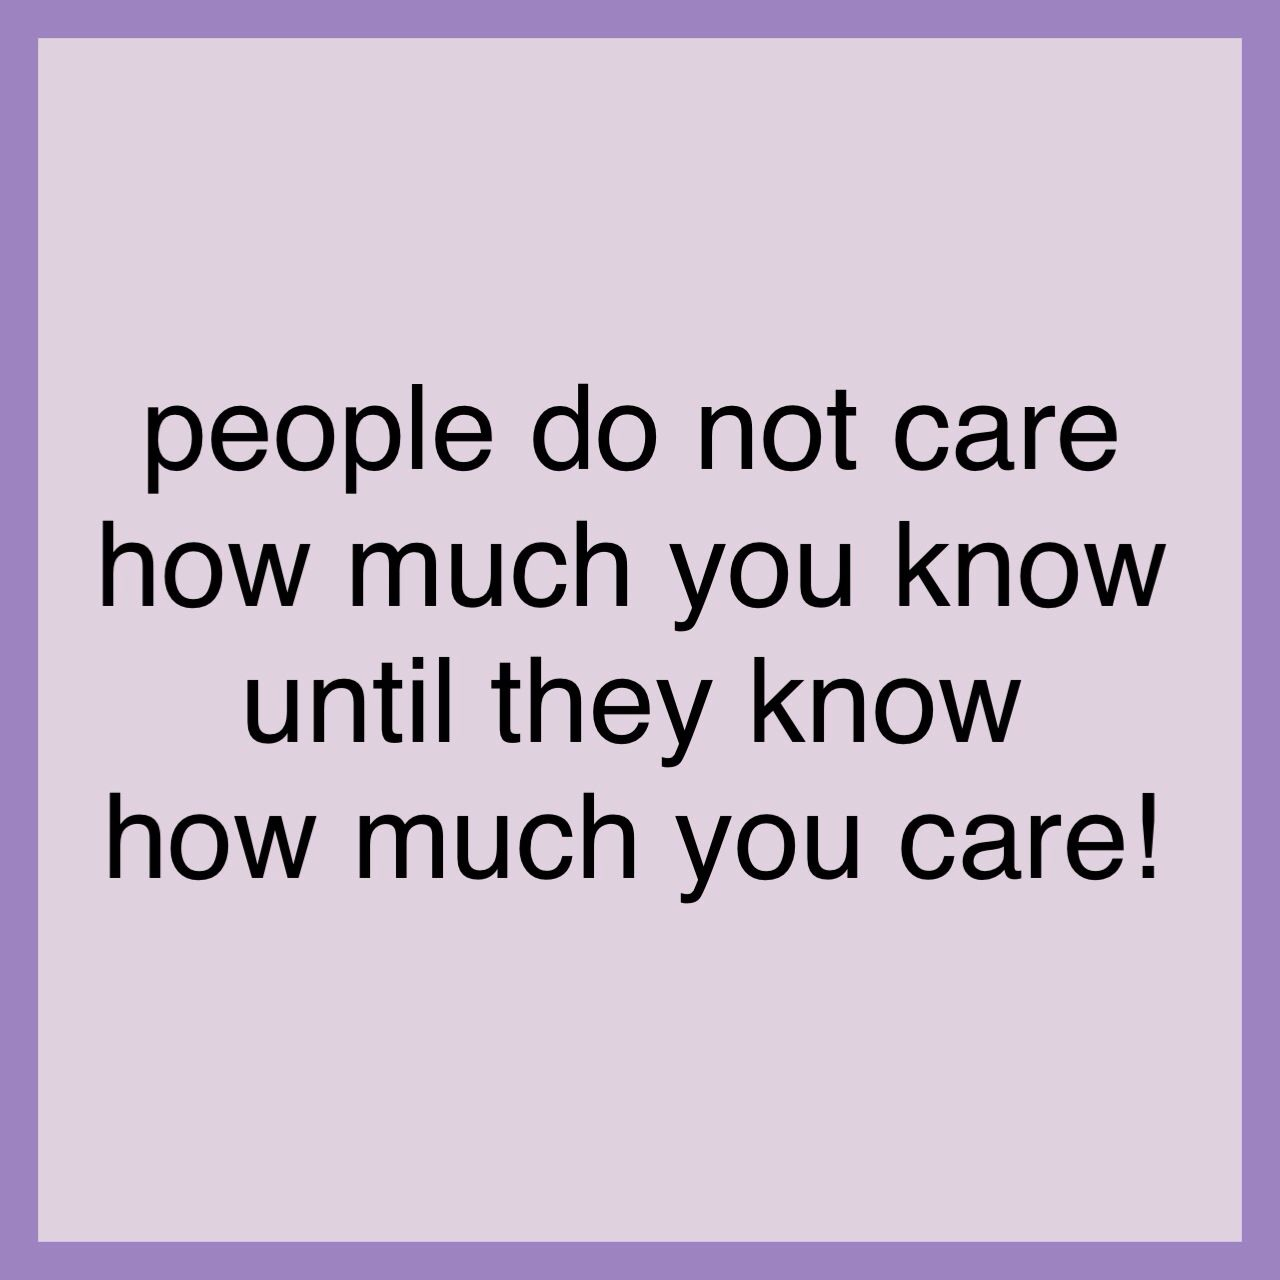 Let people know that you care! John Maxwell